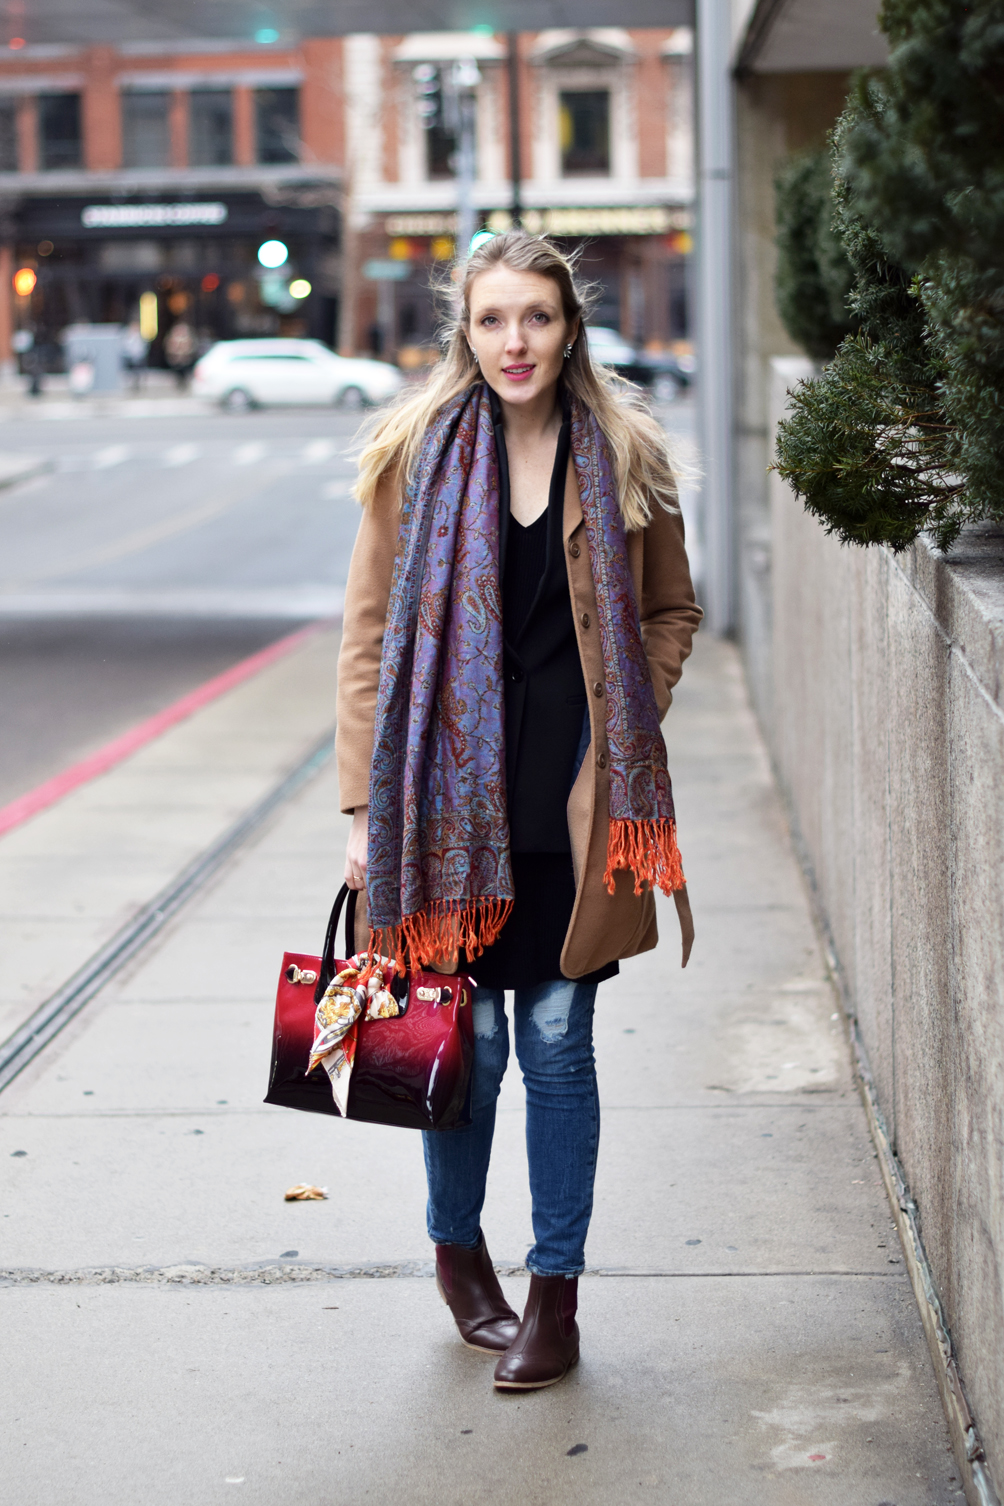 layered sweater dress outfit with skinny jeans and a camel coat 2aaa8f5fa